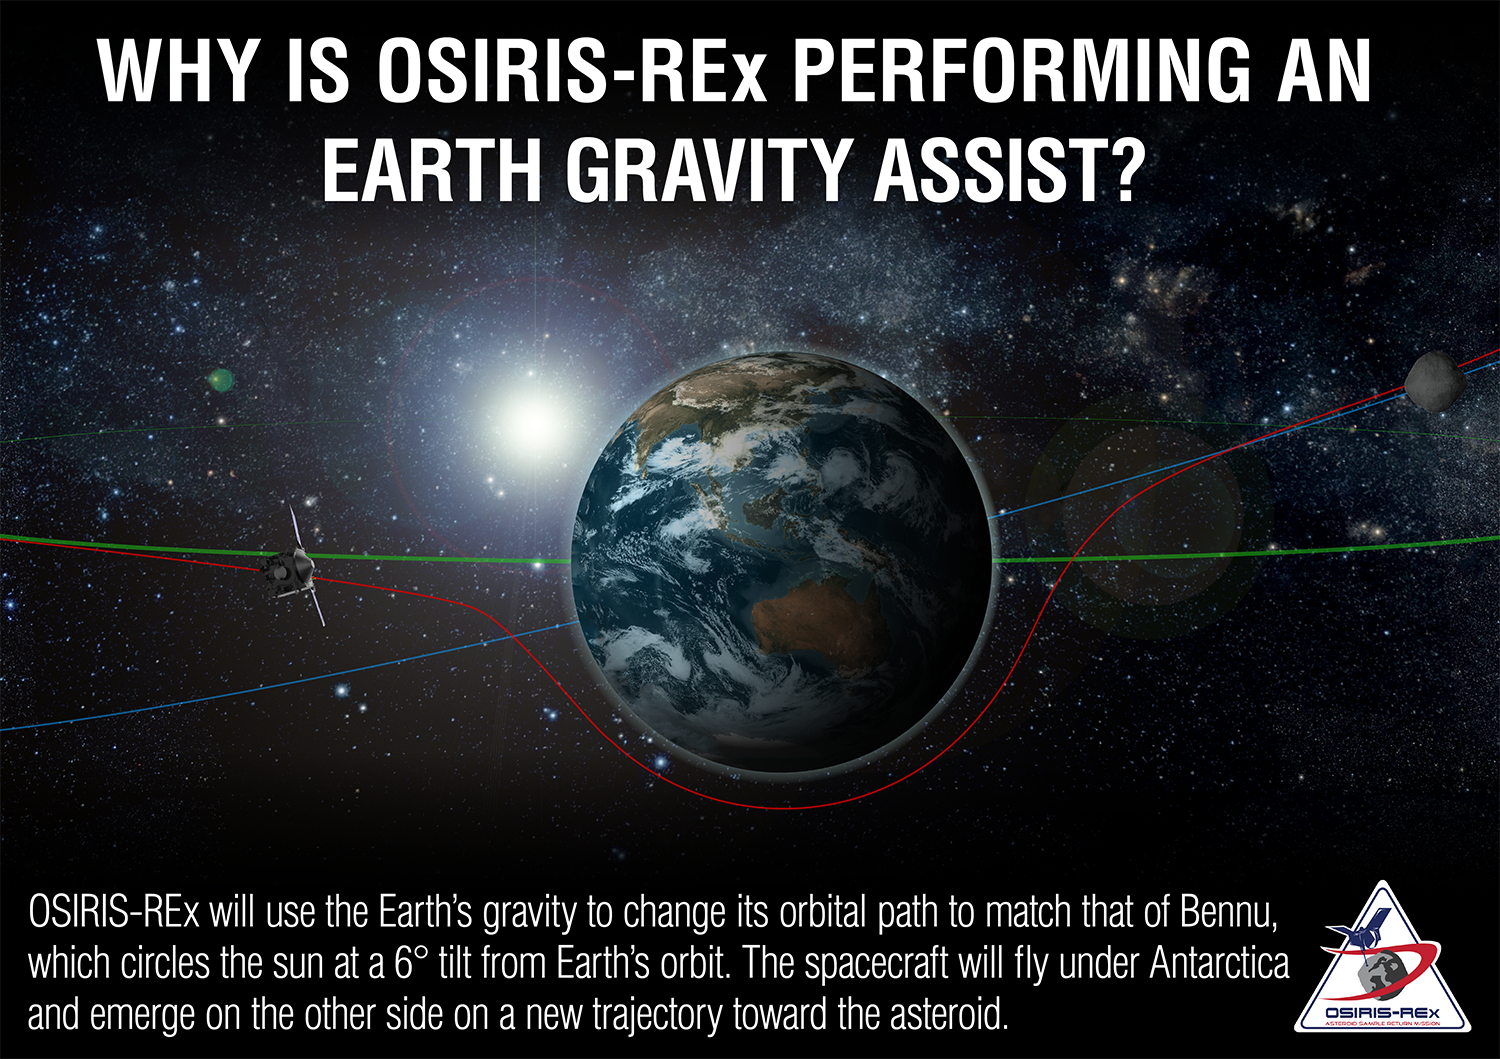 Why Is OSIRIS-REx Performing An Earth Gravity Assist?